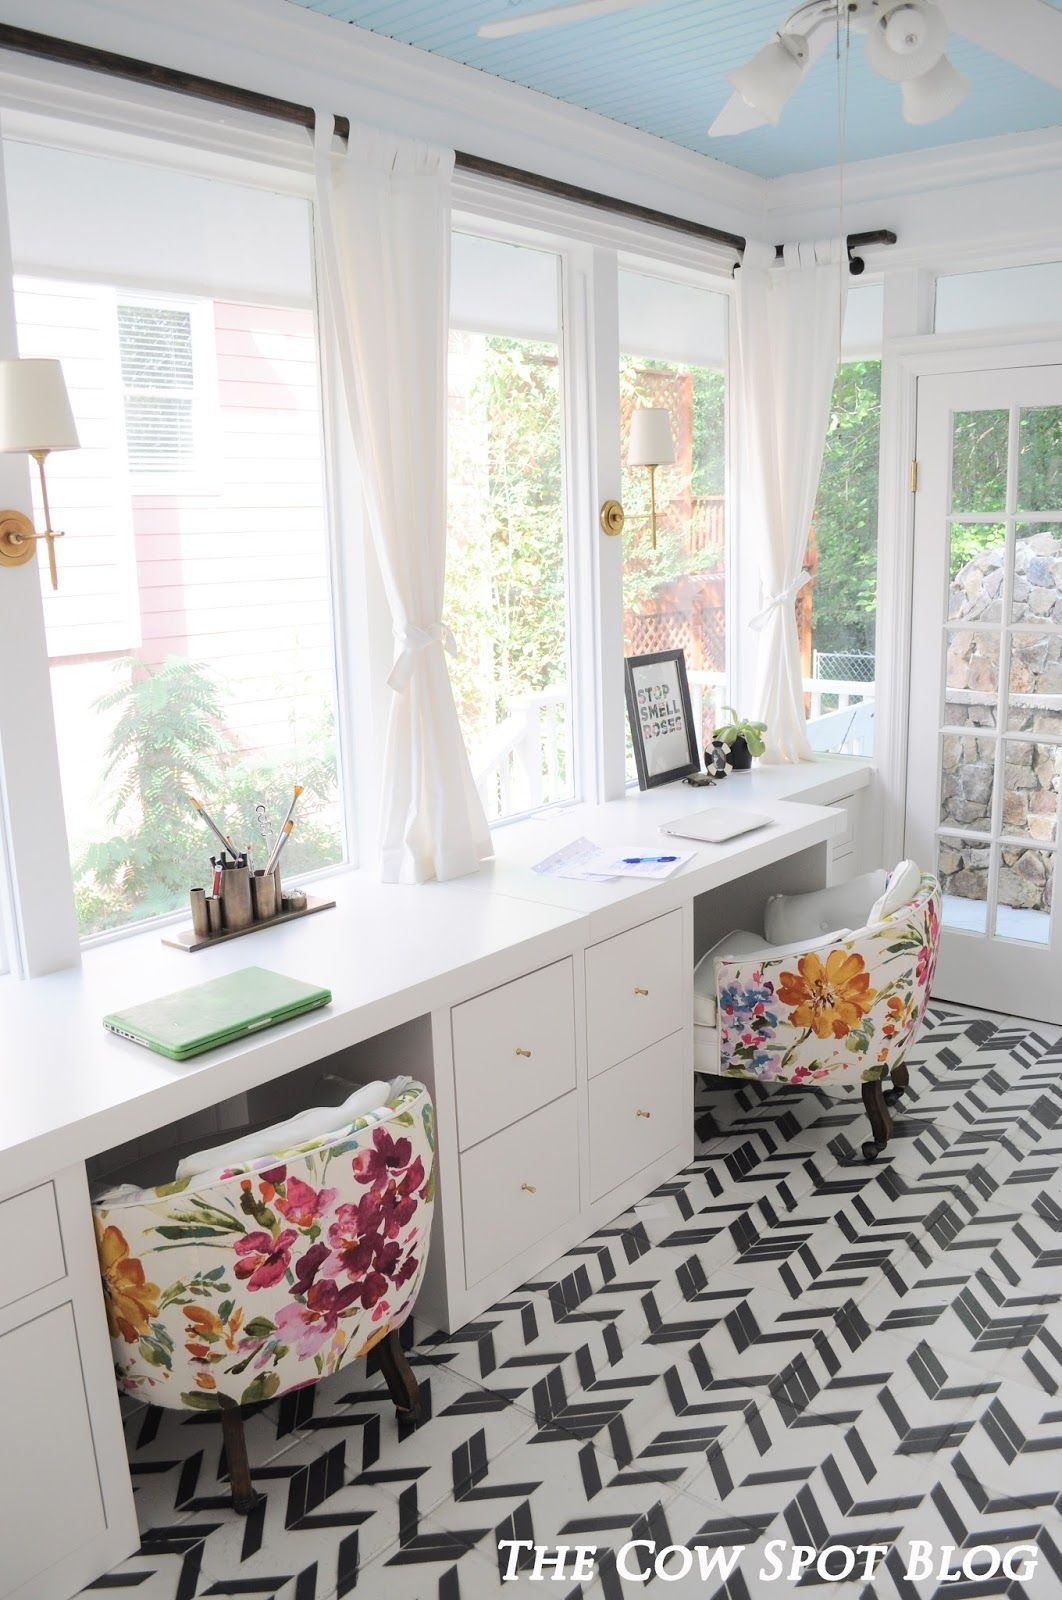 Sunroom Turned Home Office Reveal | Home Decor | Pinterest | Sunroom ...